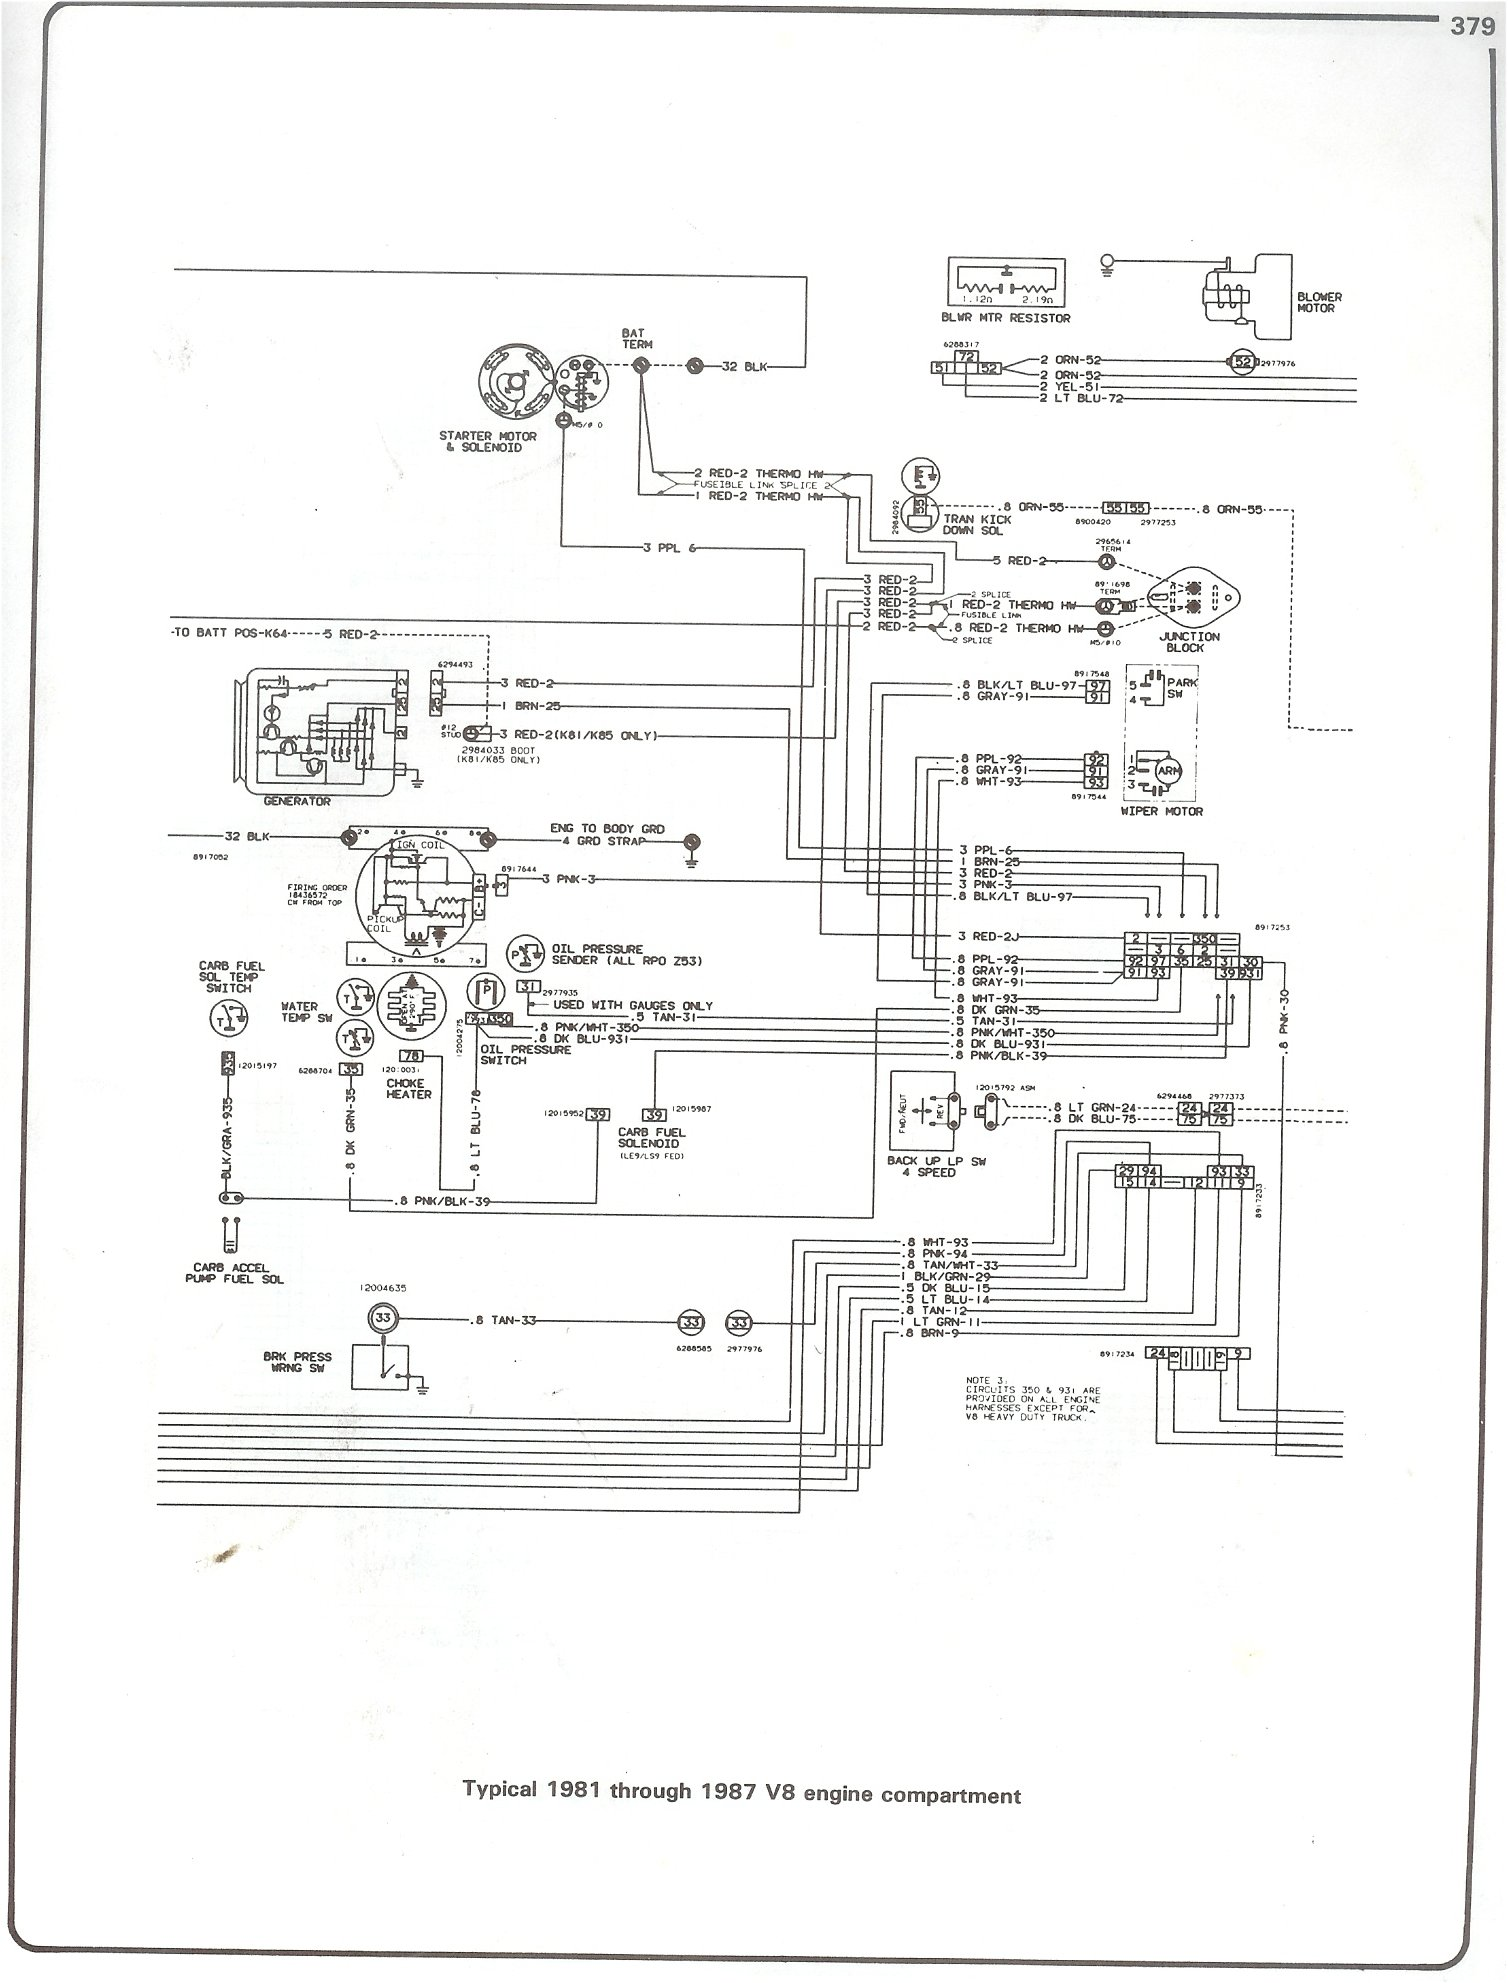 complete 73 87 wiring diagrams rh forum 73 87chevytrucks com Chevy Express 2500 Wiring Diagram 1980 Chevy Truck Wiring Diagram